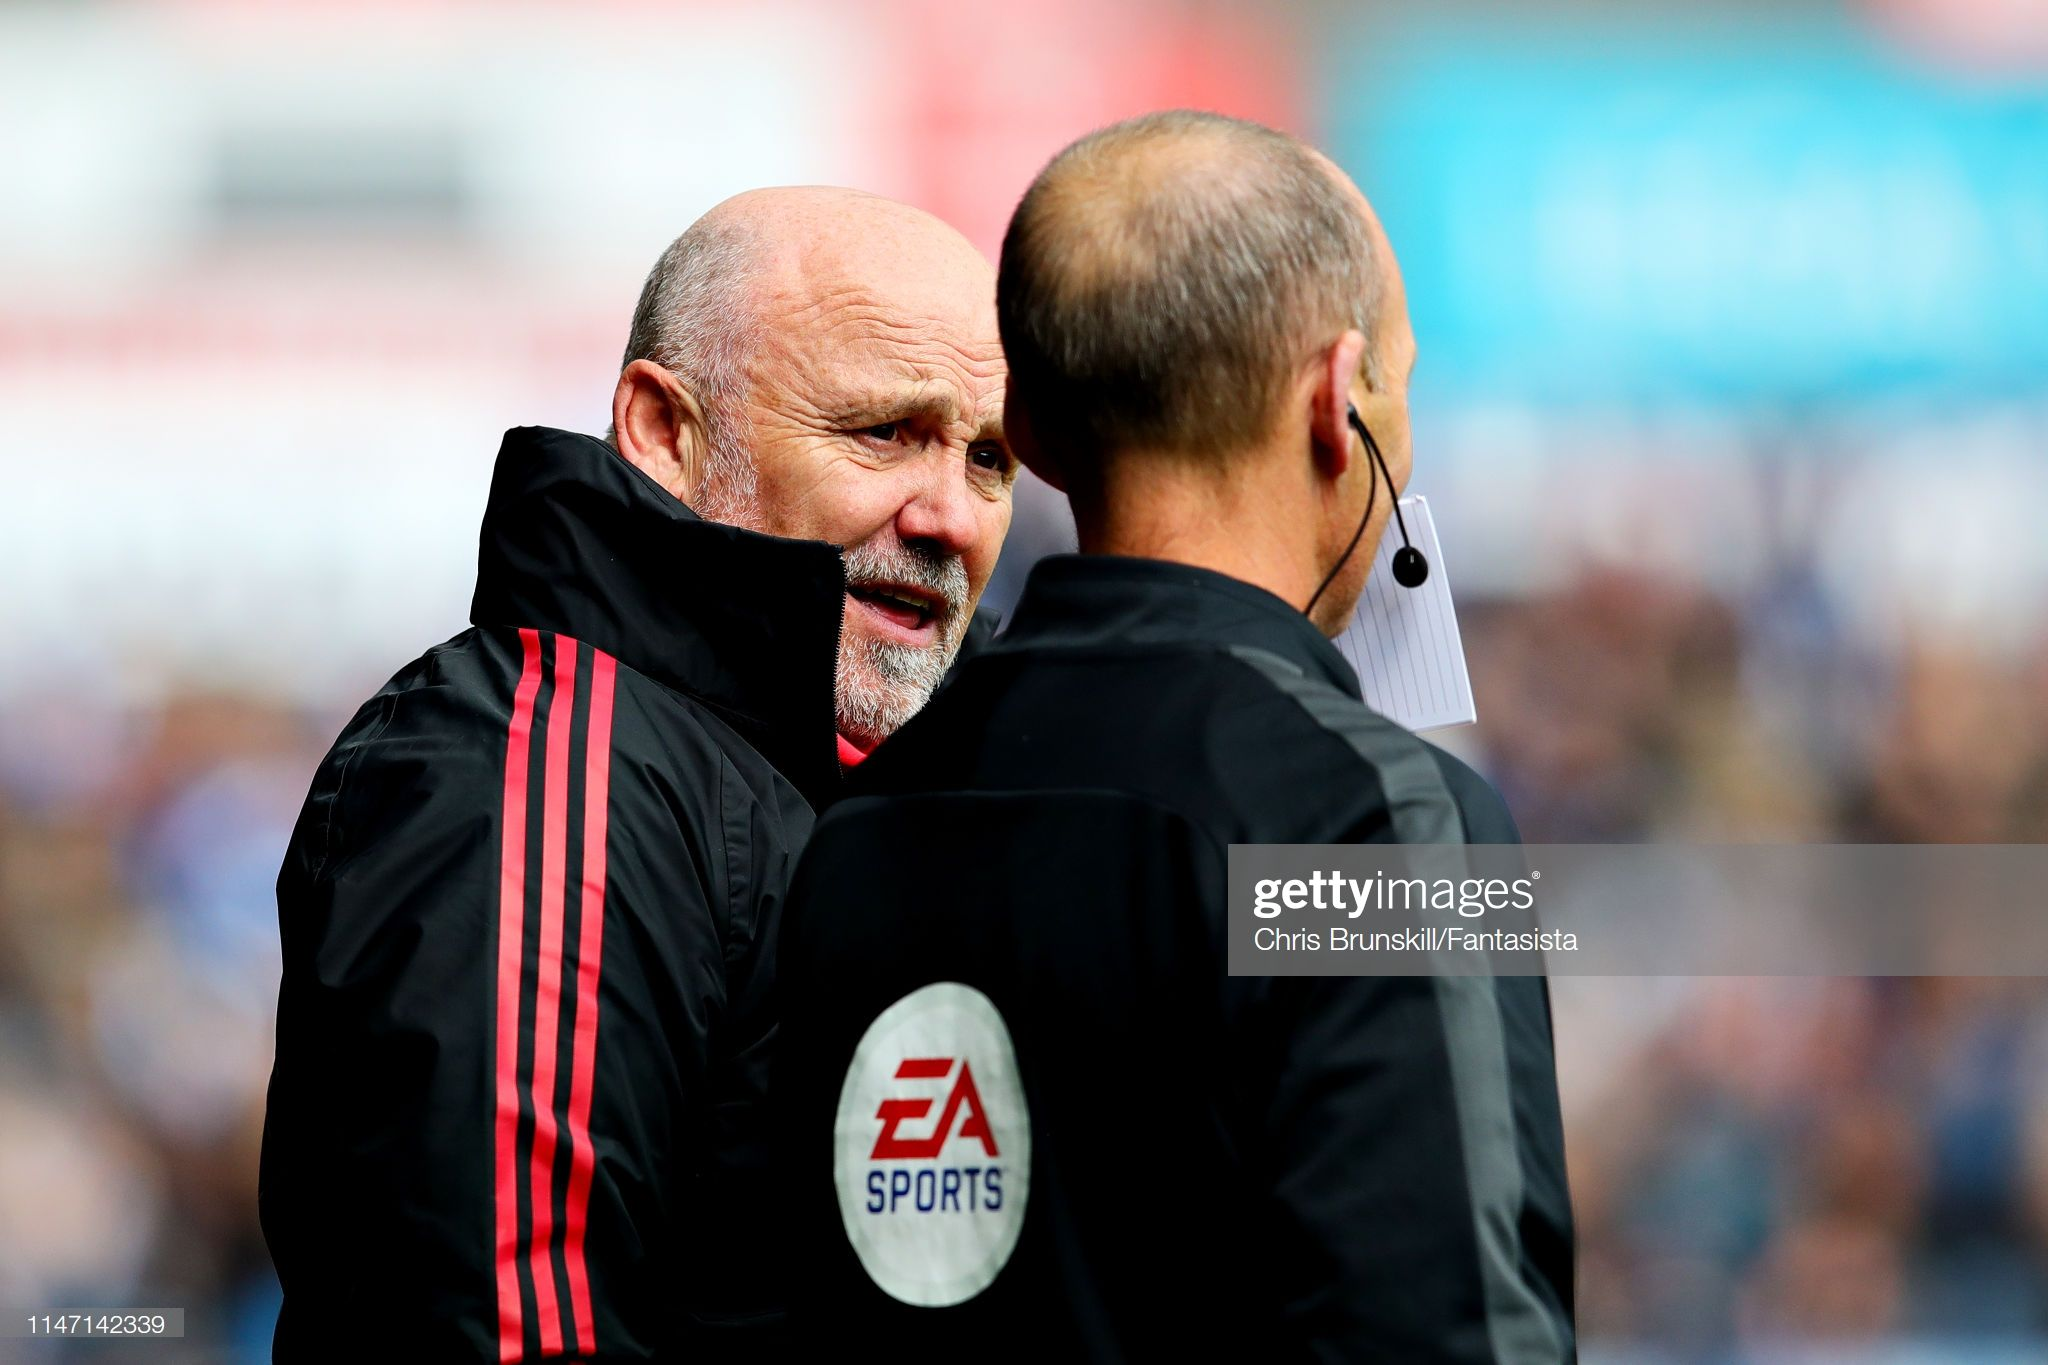 Assistant Manager Of Manchester United Mike Phelan Talks With The Manchester United Manchester United Football Club Manchester